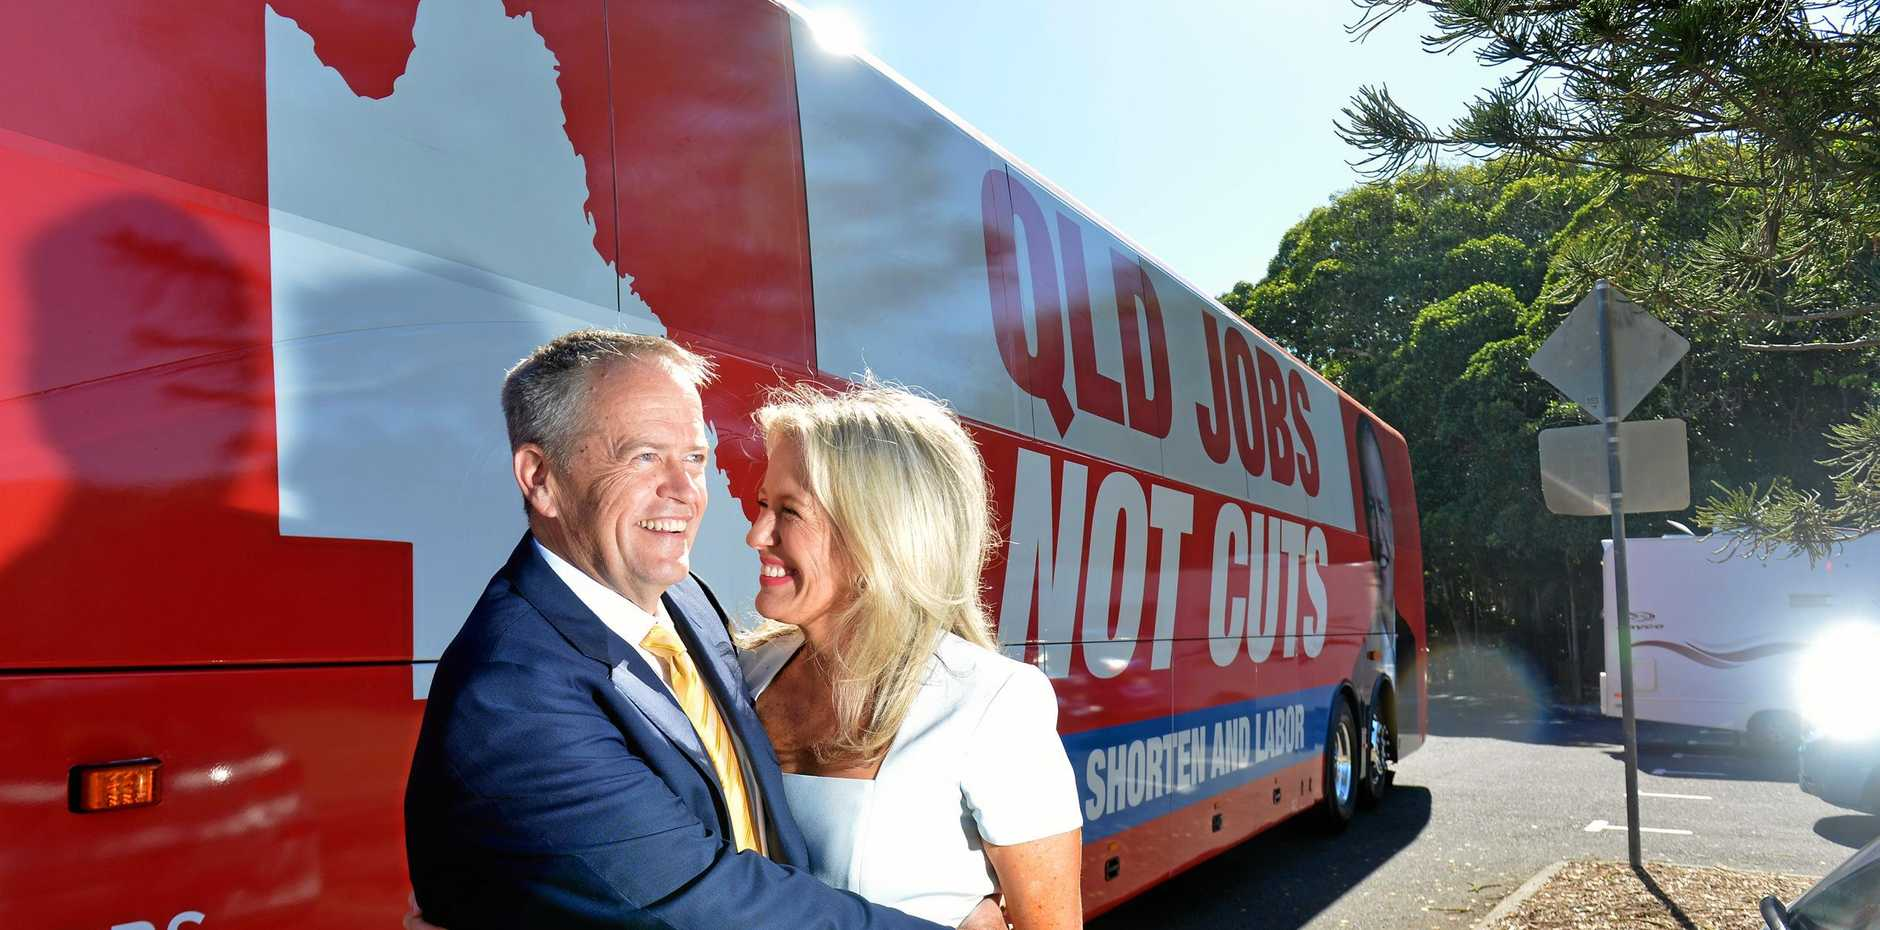 Federal Opposition leader Bill Shorten and his wife Chloe arrive at Moffat Beach in a big red bus on their first day of holidays on the  Sunshine Coast.